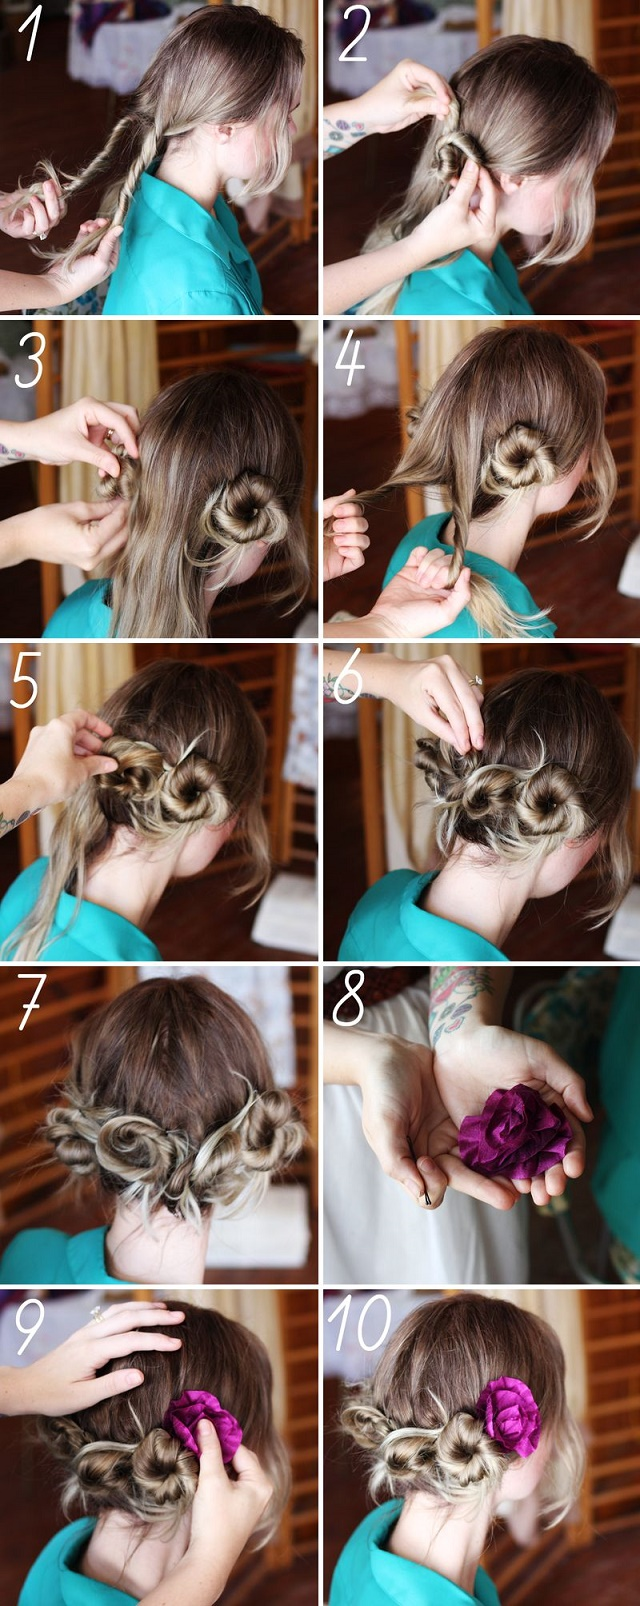 A Twist in Time – Bohemian Hairdo Idea